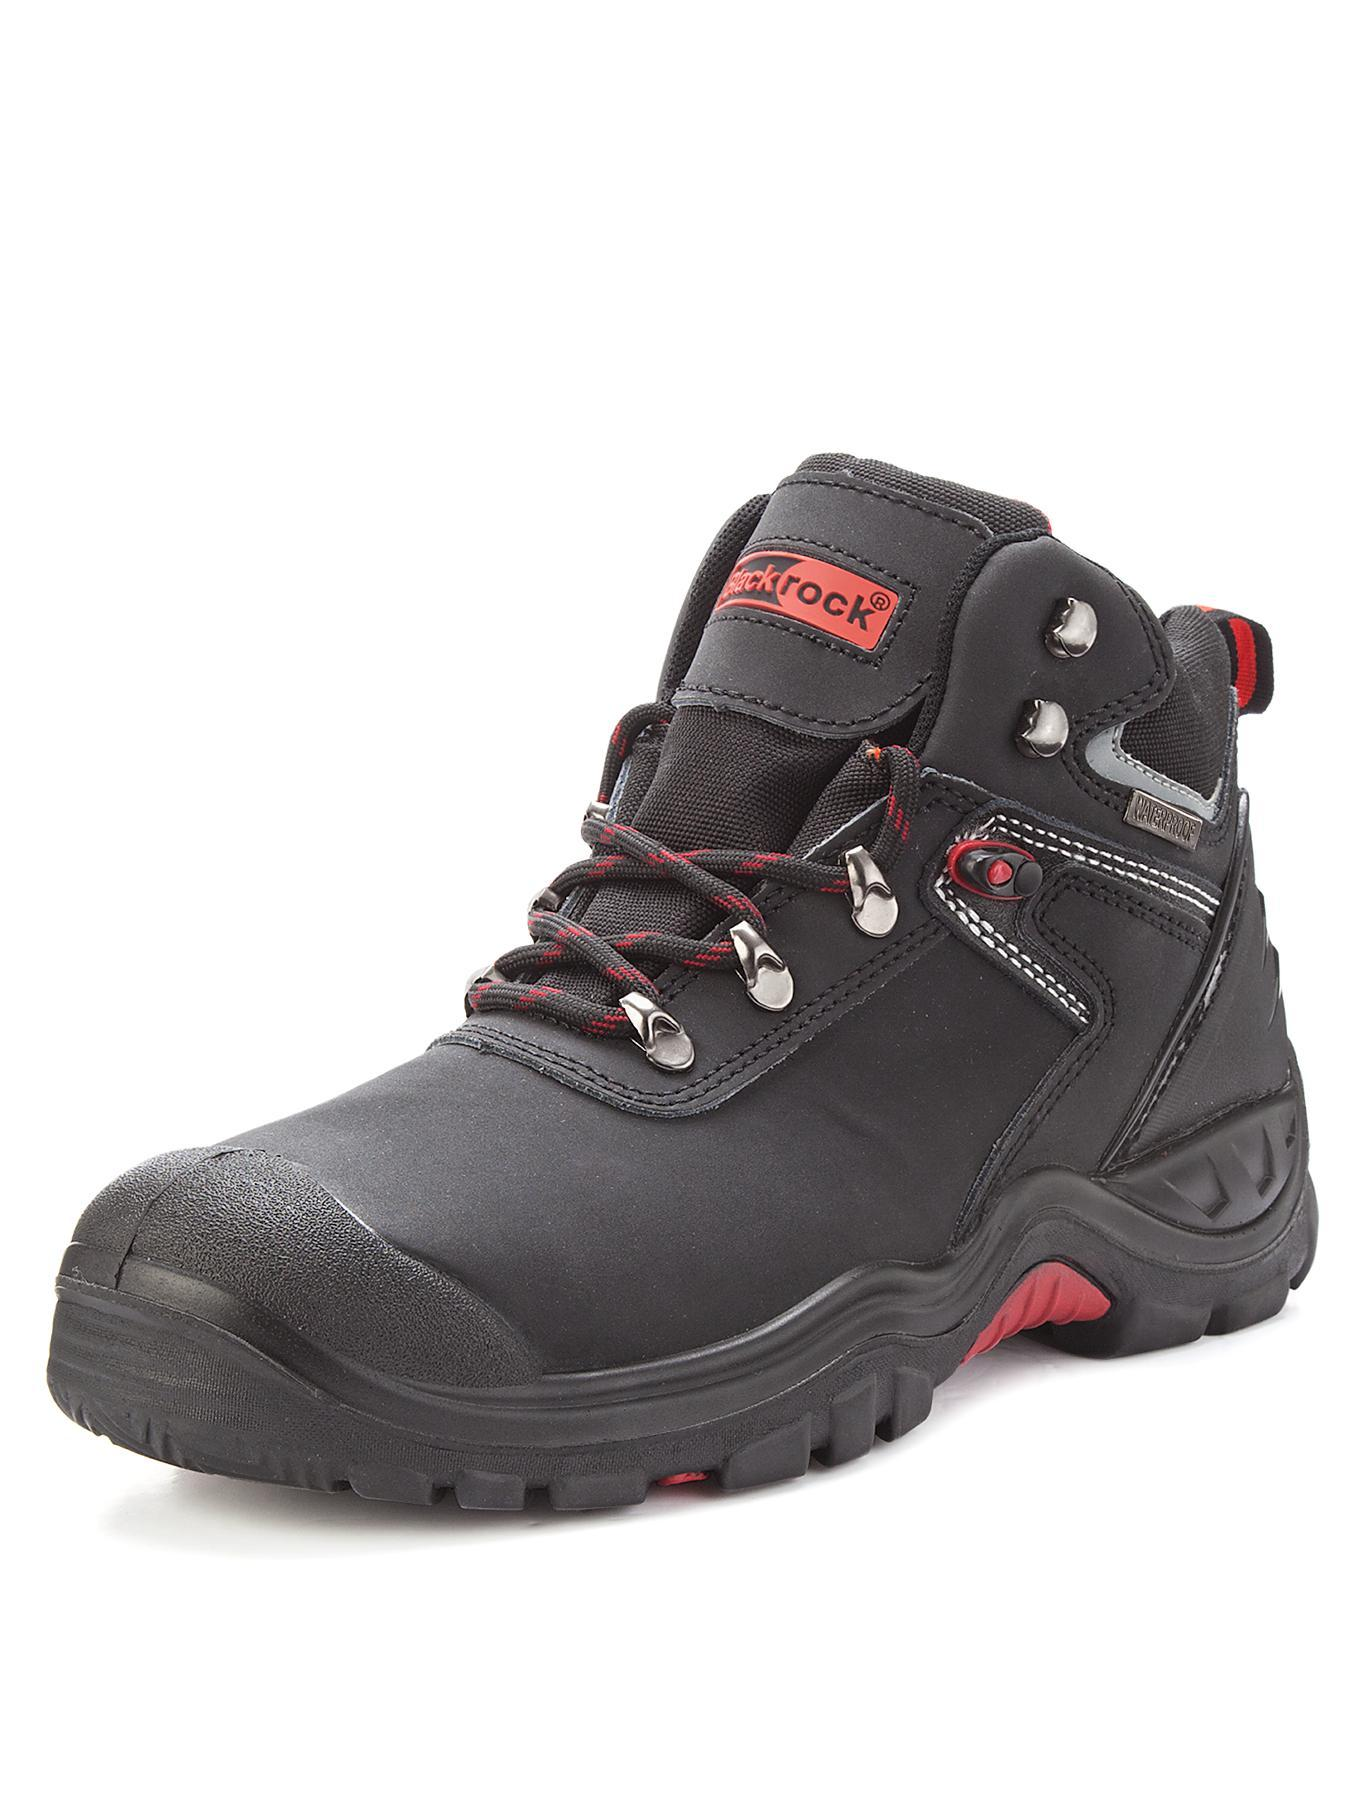 Tempest Waterproof Safety Boots, Black